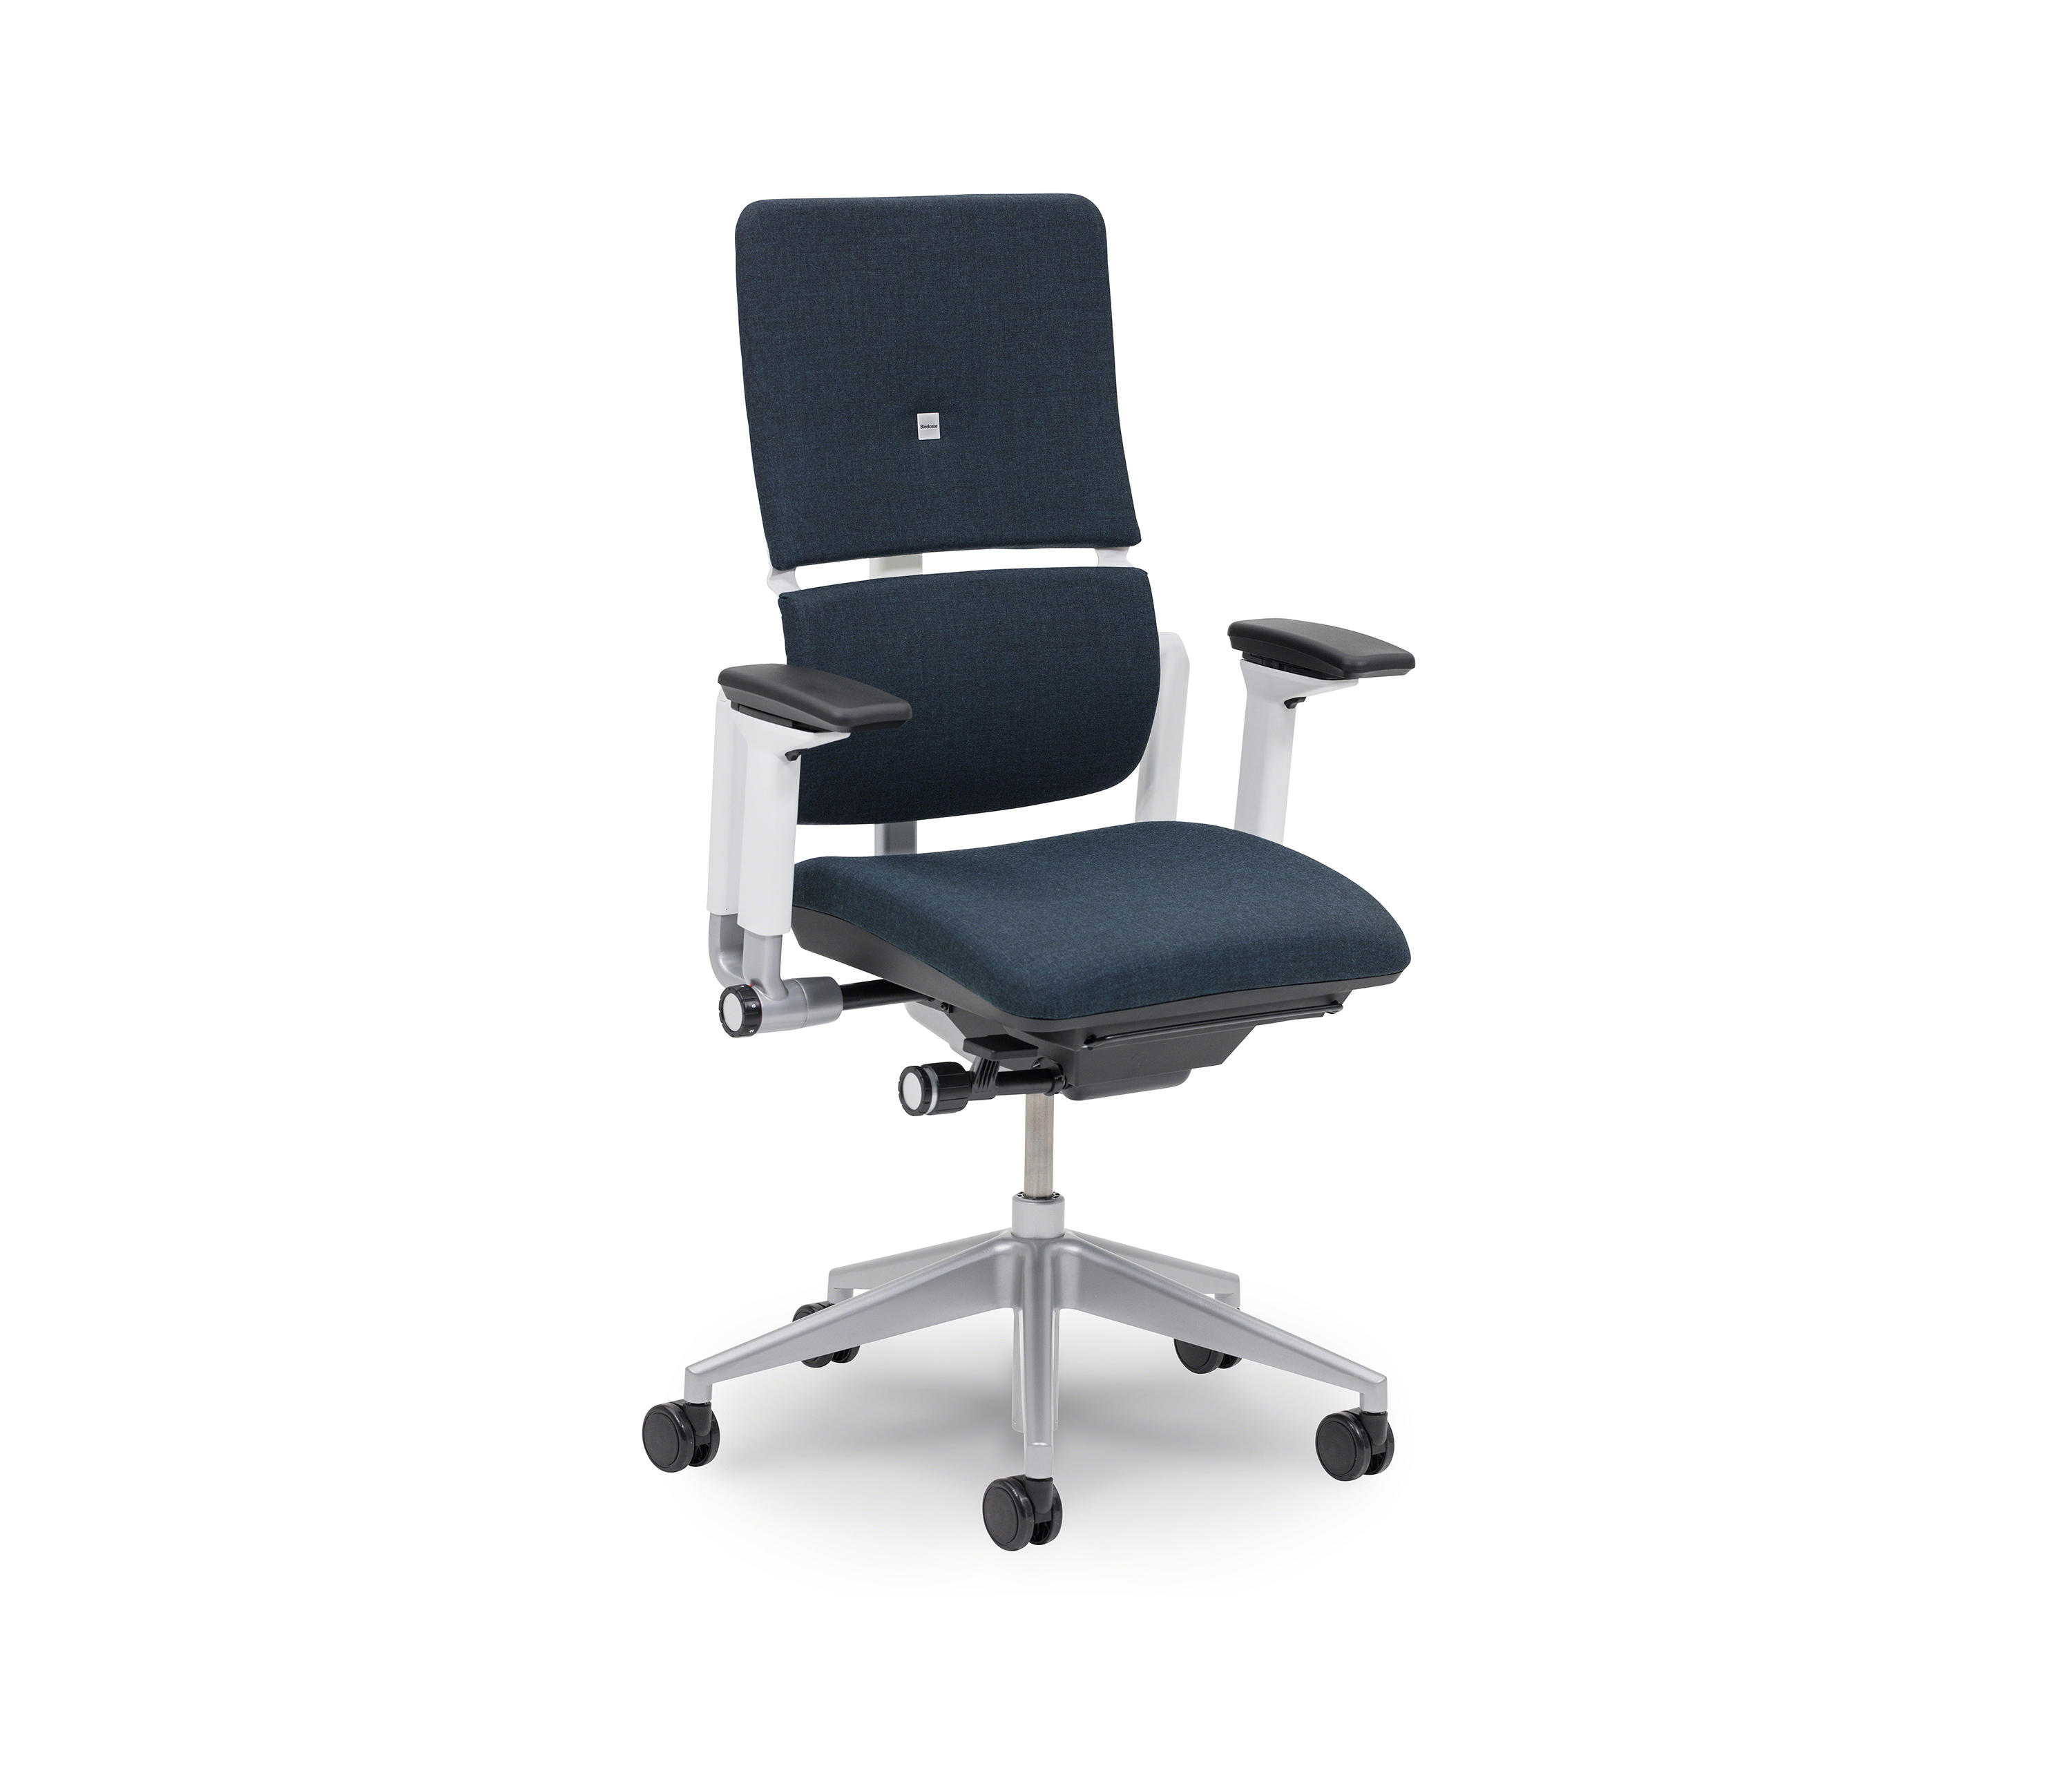 Please Chair by Steelcase | Office chairs  sc 1 st  Architonic & PLEASE CHAIR - Office chairs from Steelcase | Architonic